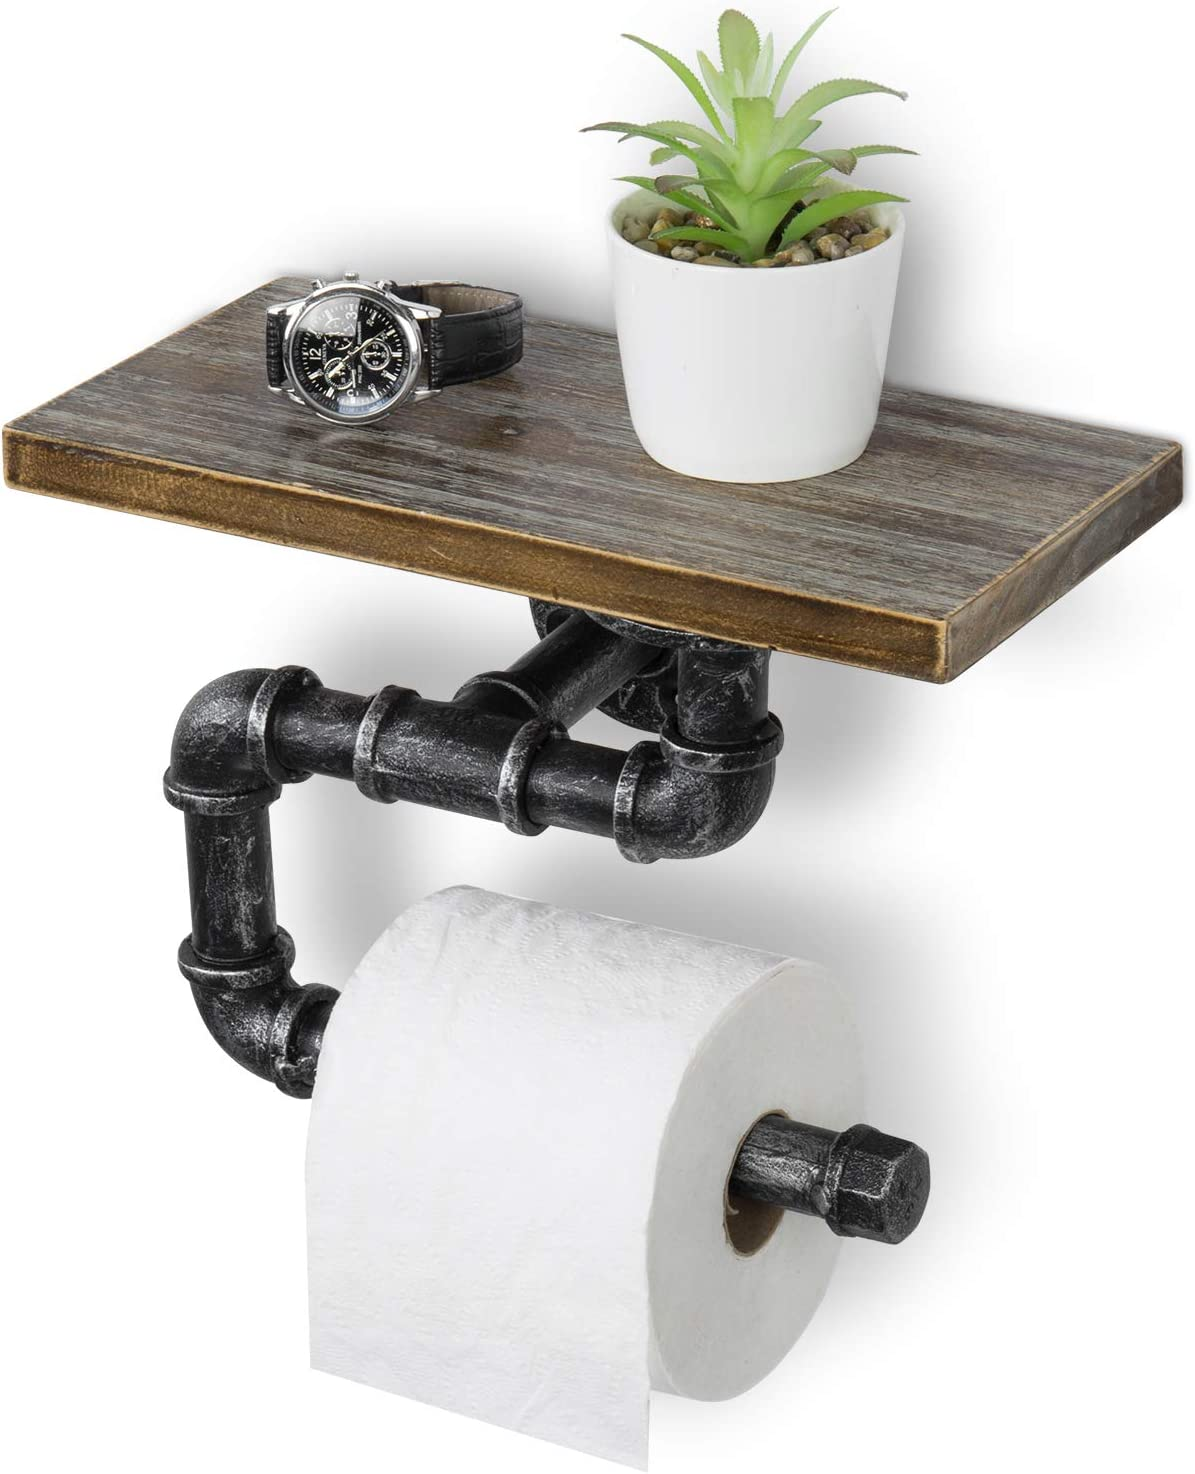 MyGift 12 x 6 Inch Industrial Wall-Mounted Pipe Toilet Paper Roll Holder with Rustic Wood Shelf